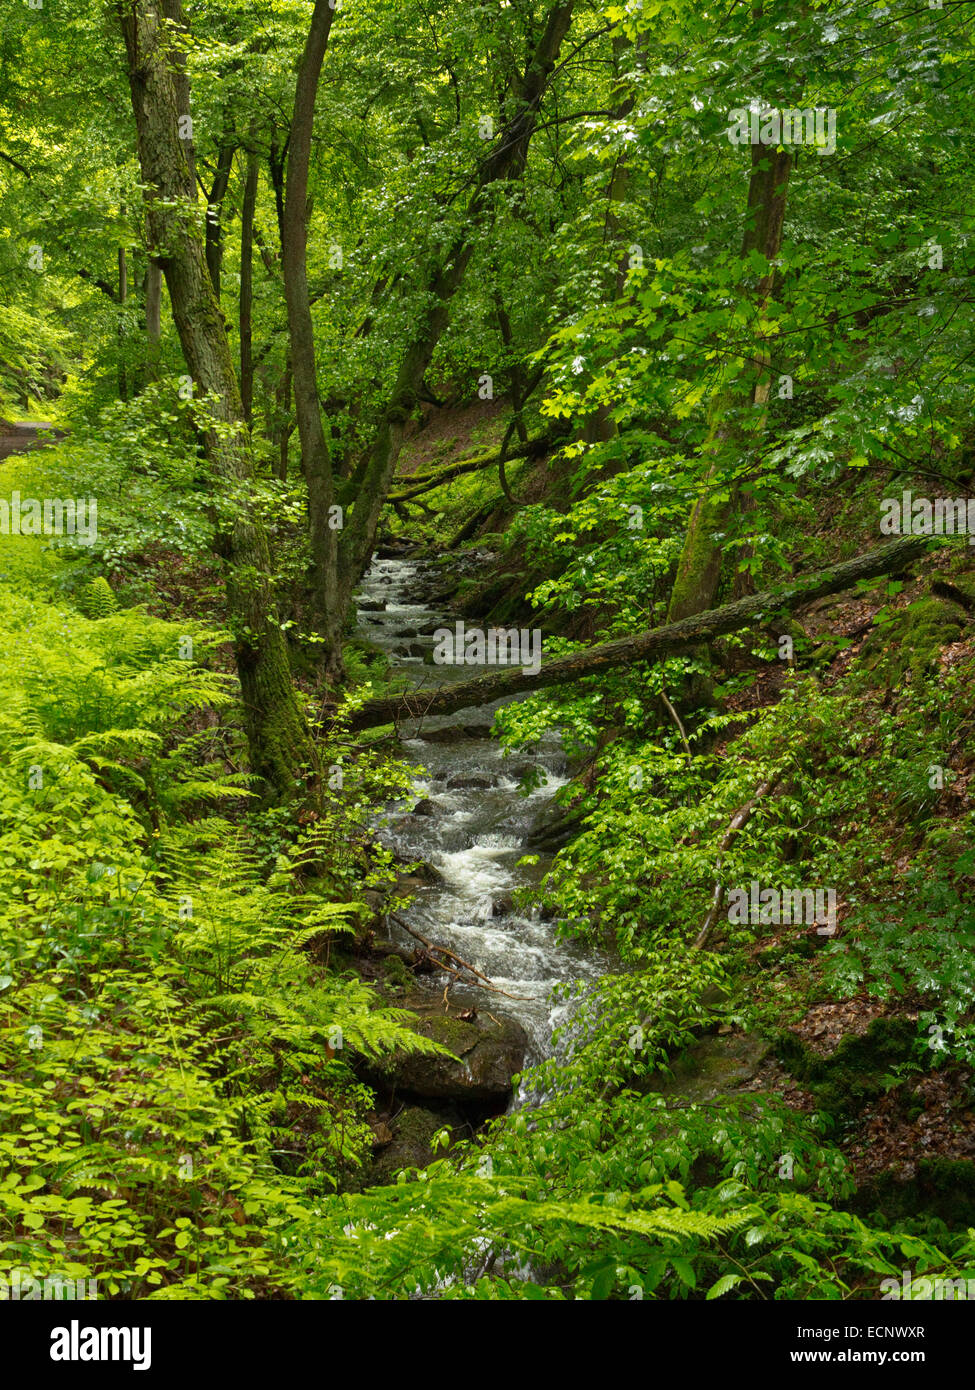 Stream in the forest of Morgenbach valley south of Trechtingshausen, along west bank of the Rhine, Bingen Forest, - Stock Image